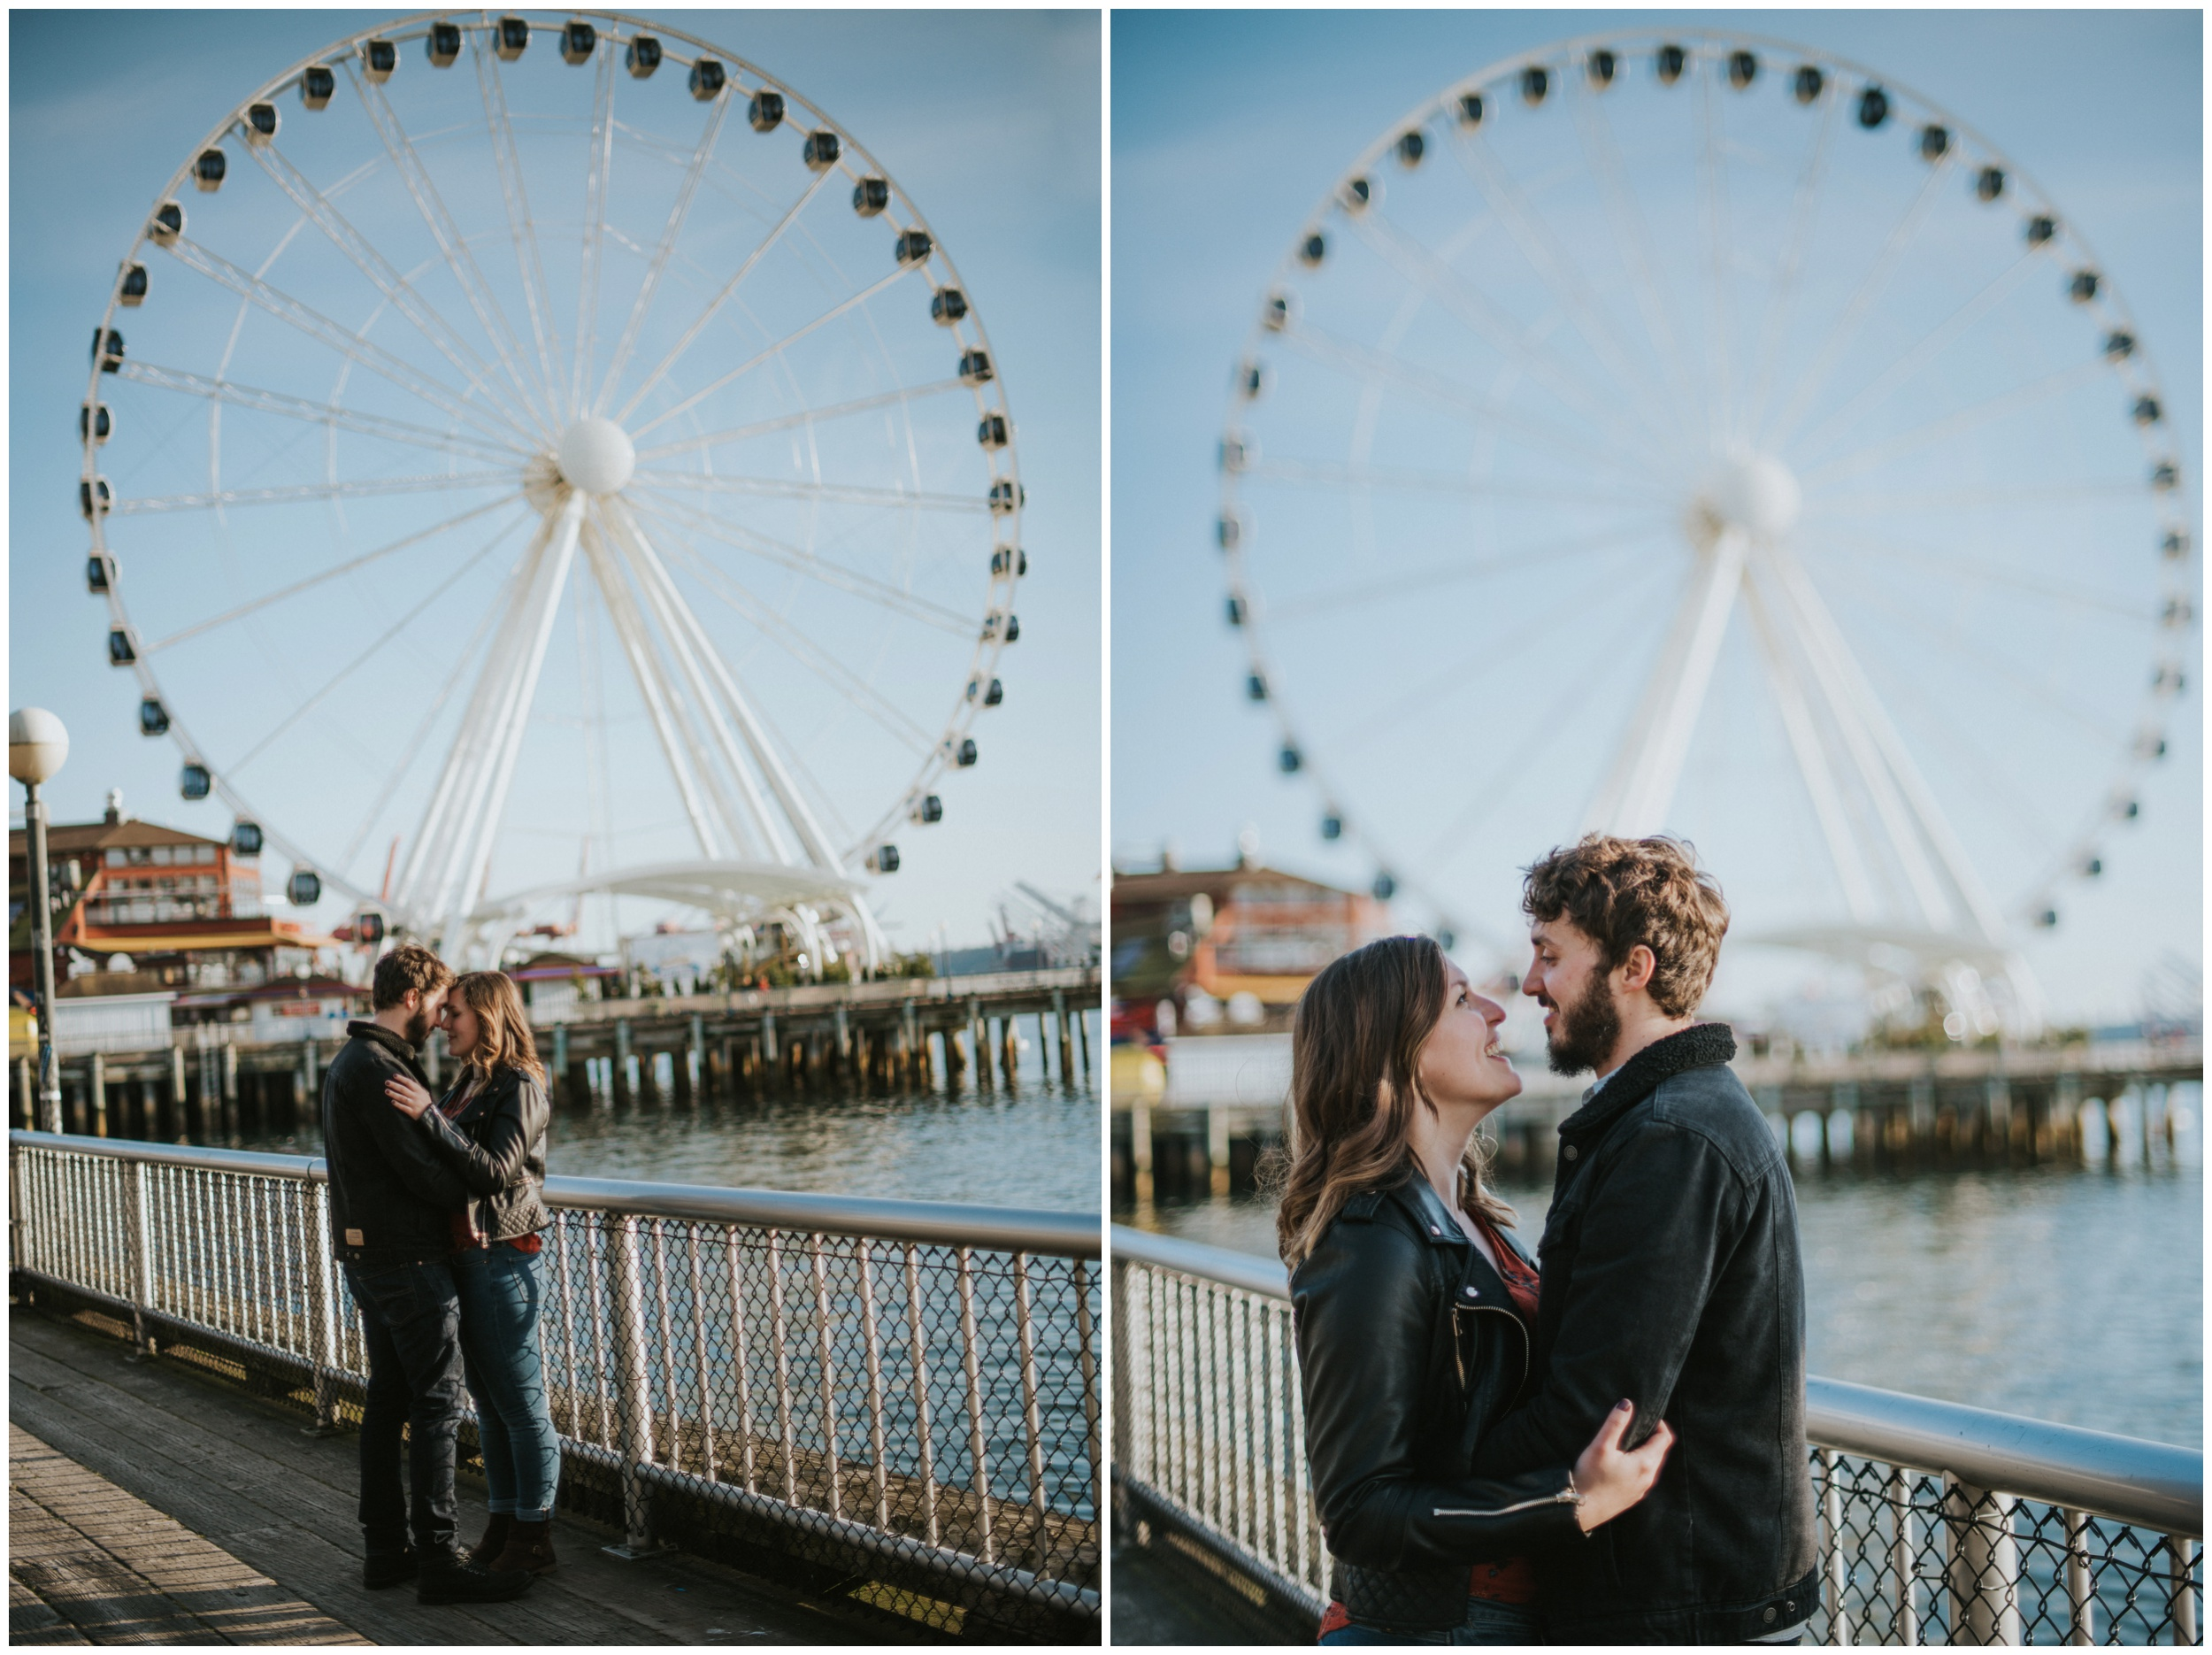 Couple posing on boardwalk with Ferris wheel | Seattle Engagement Photographer www.riversandroadsphotography.com